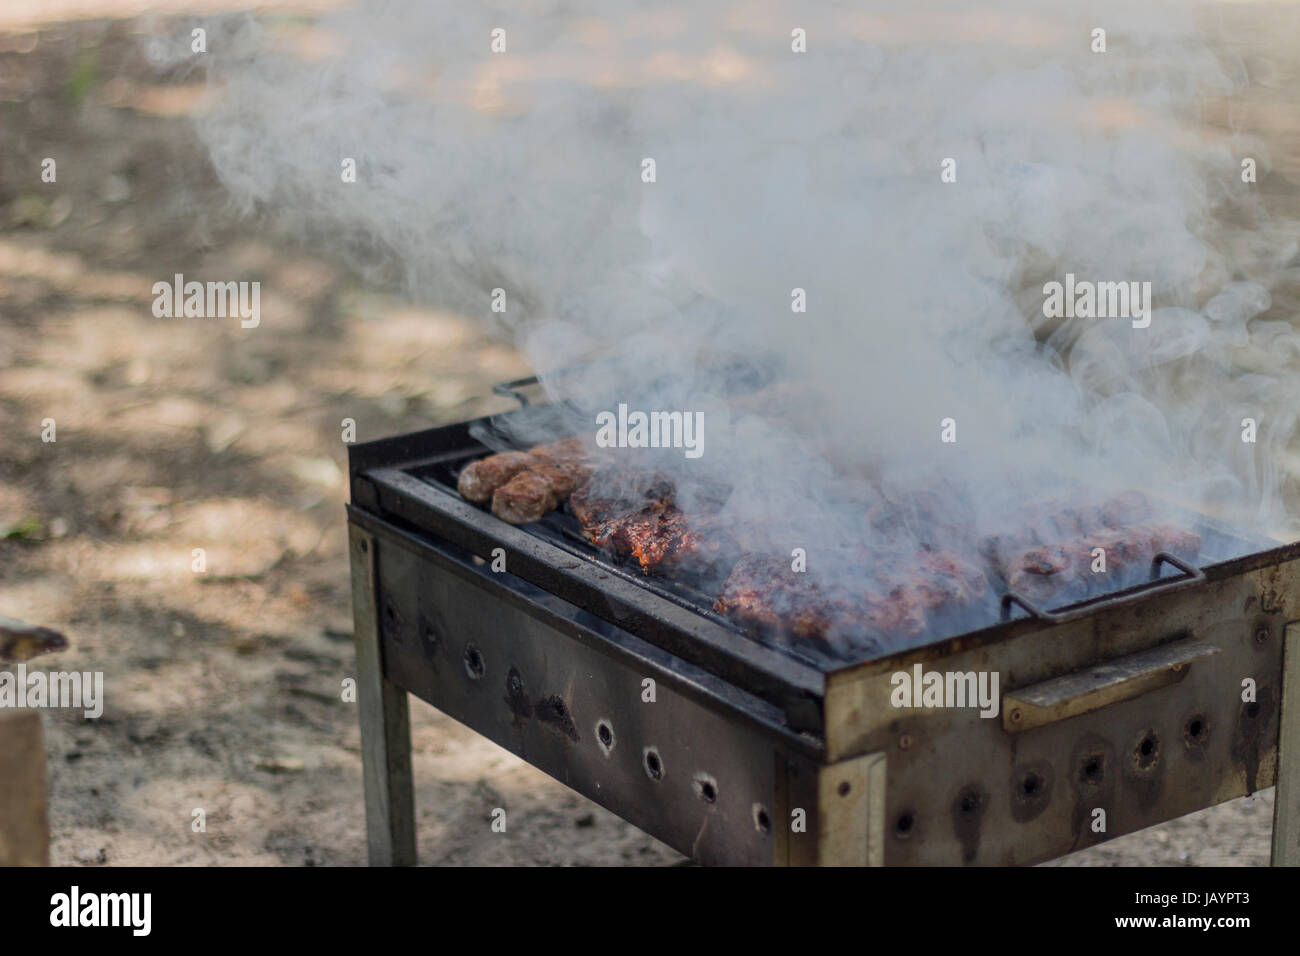 Stock Photography - Meat On A Grill - Stock Image